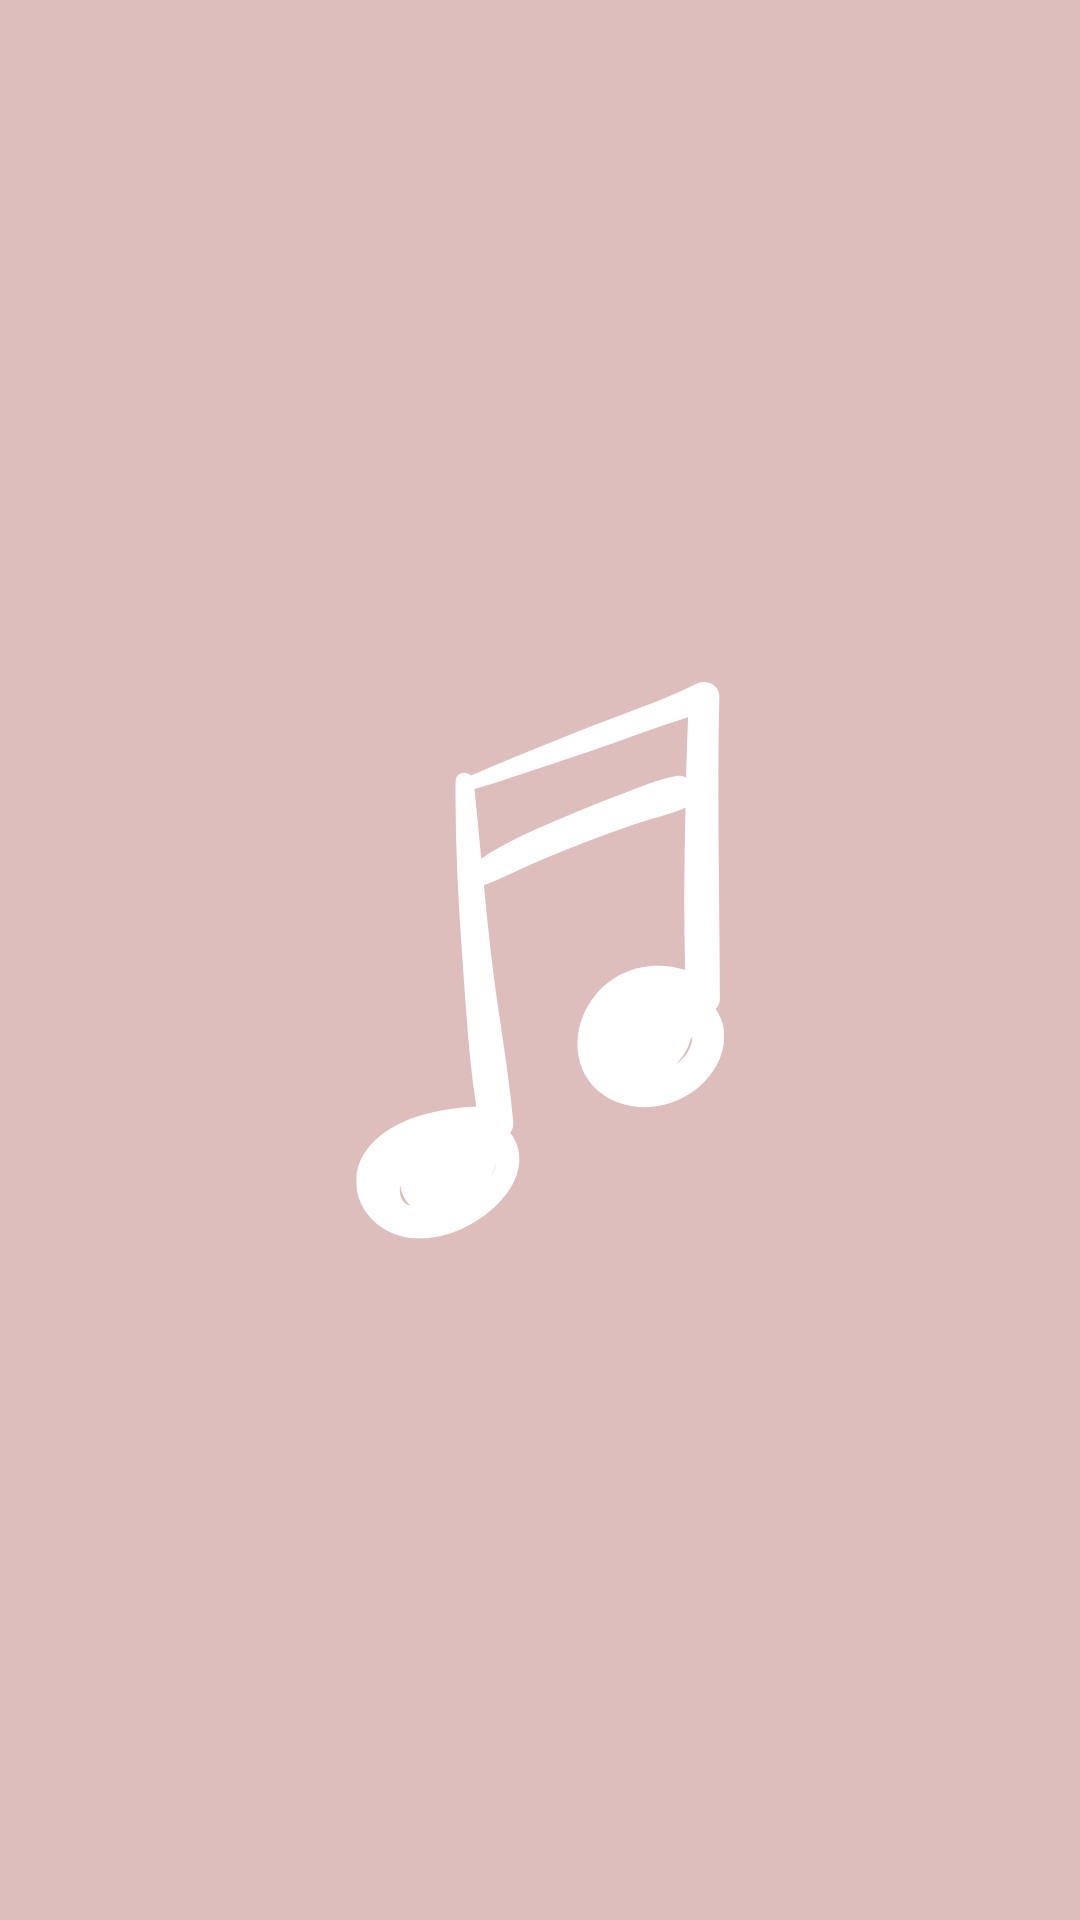 Musical Note Instagram Highlight Cover Pink Wallpaper Backgrounds Pink Music Wallpaper Instagram Highlight Icons